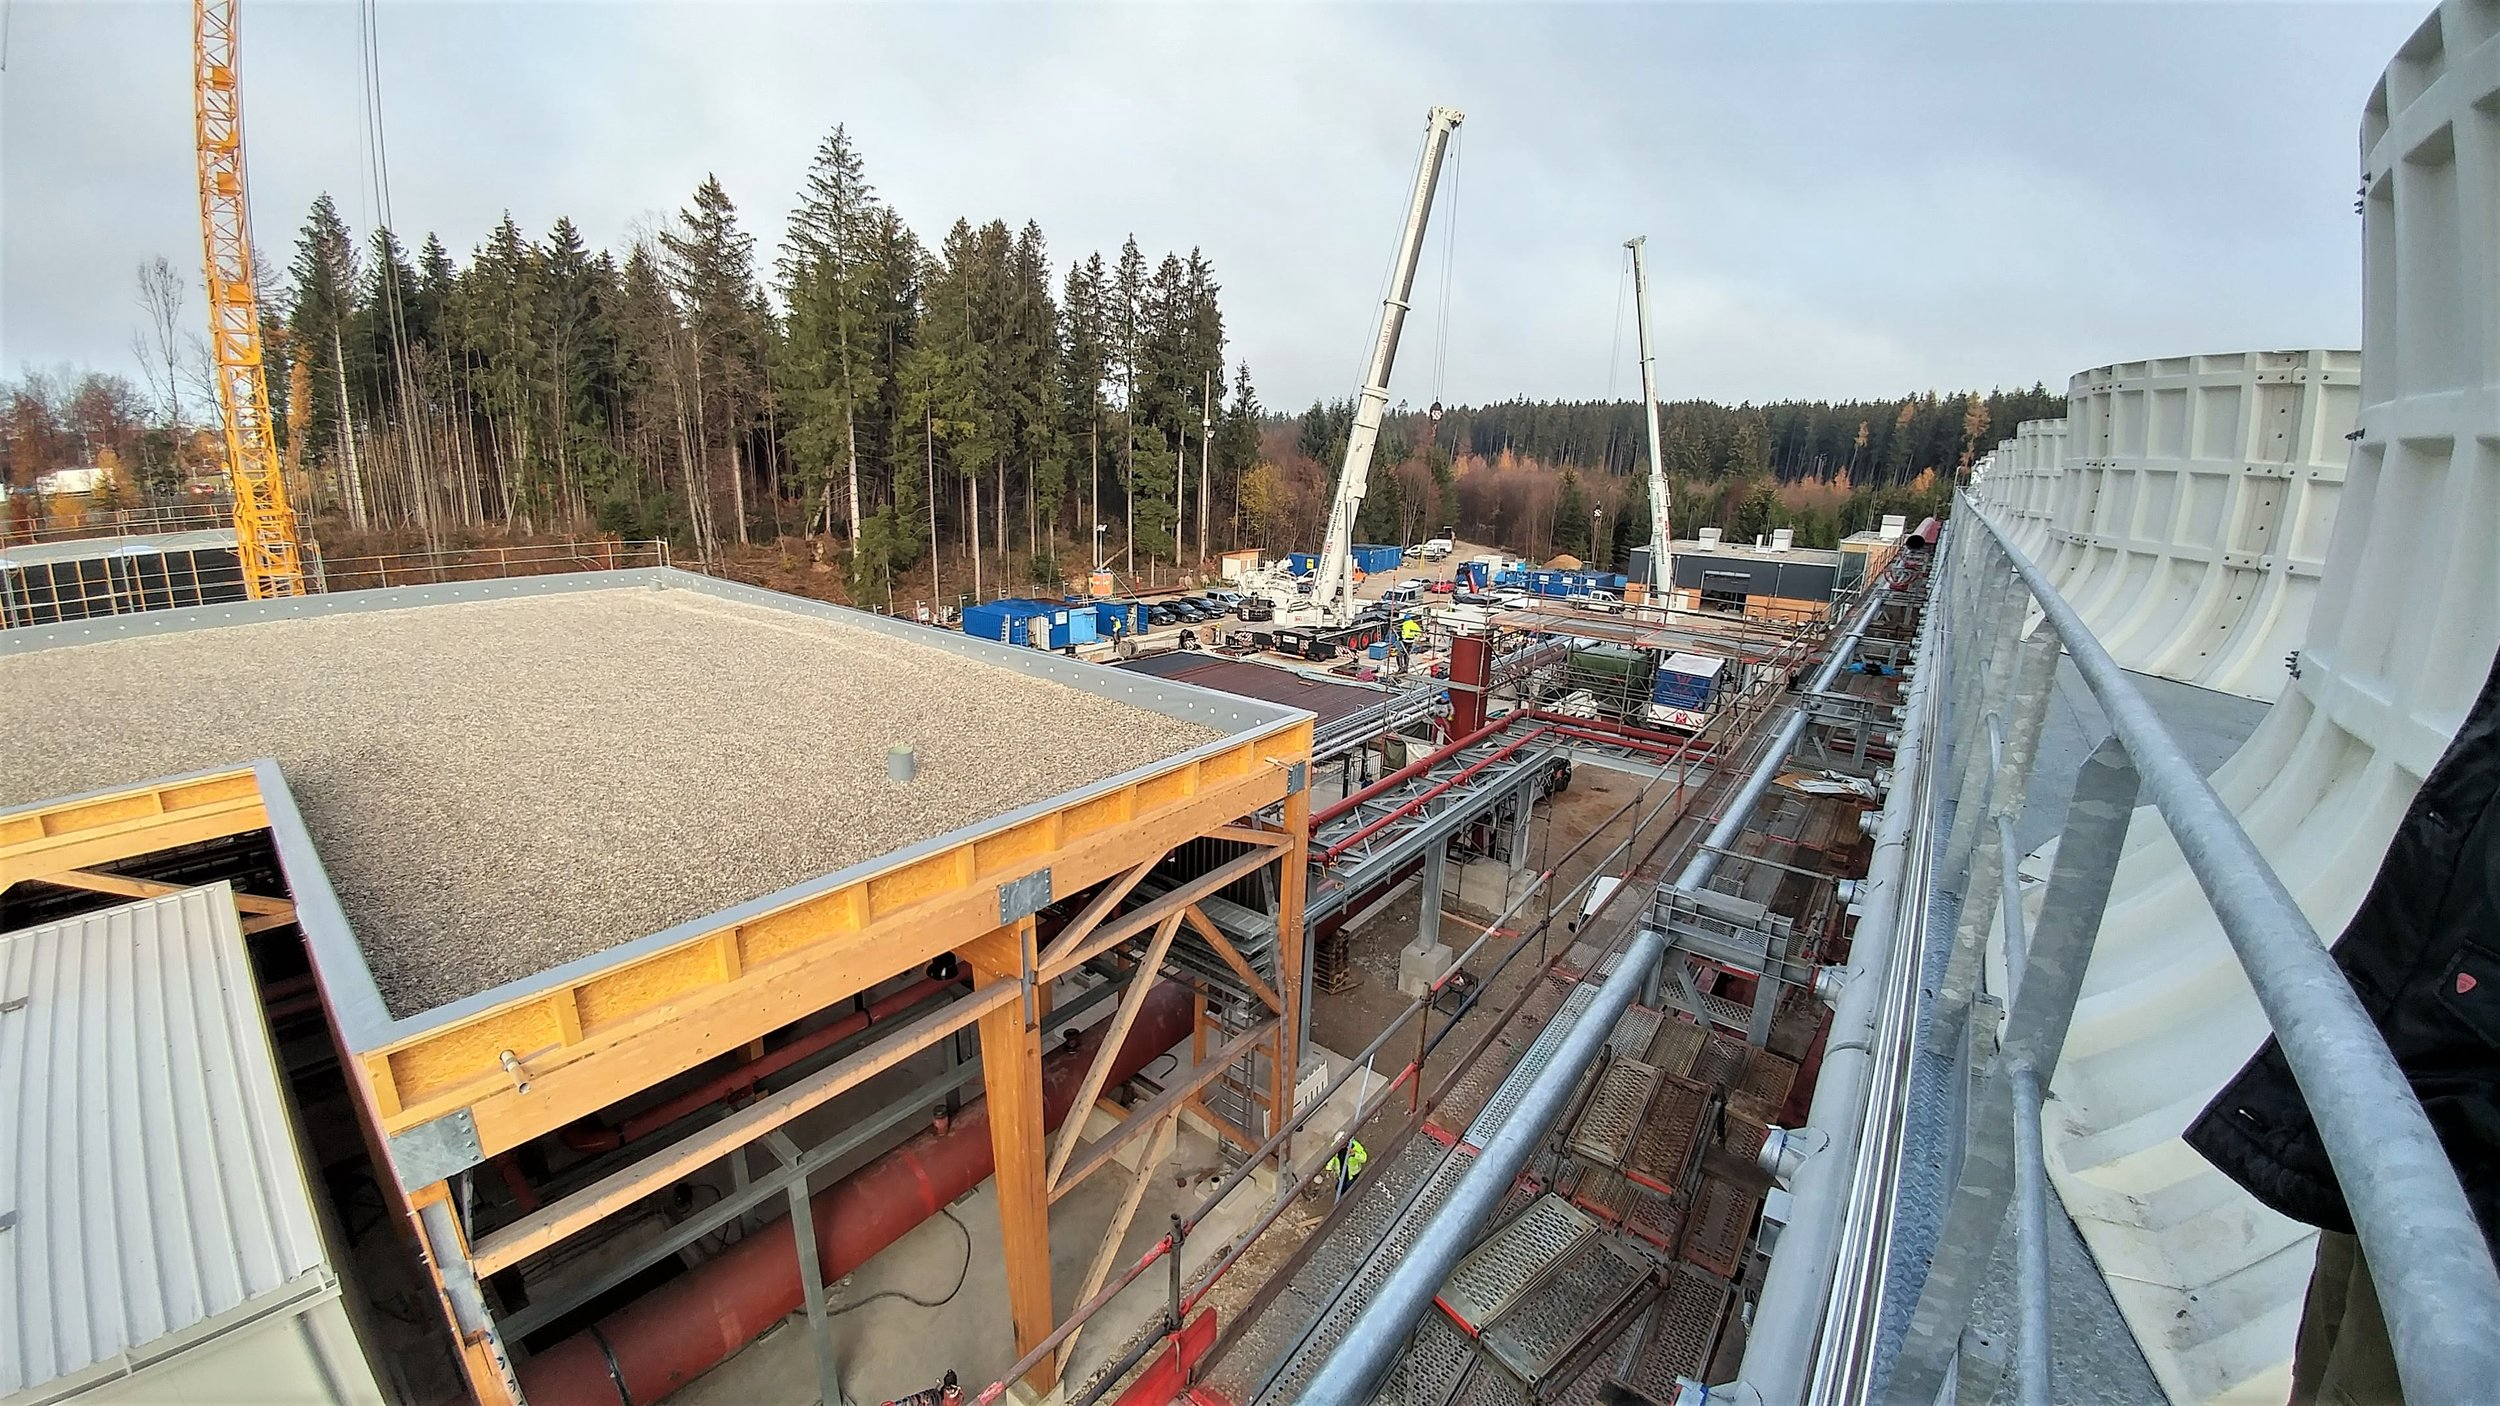 Holzkirchen site overview from the cooling towers. From left to right: power plant, geothermal well pad, district heating distribution center